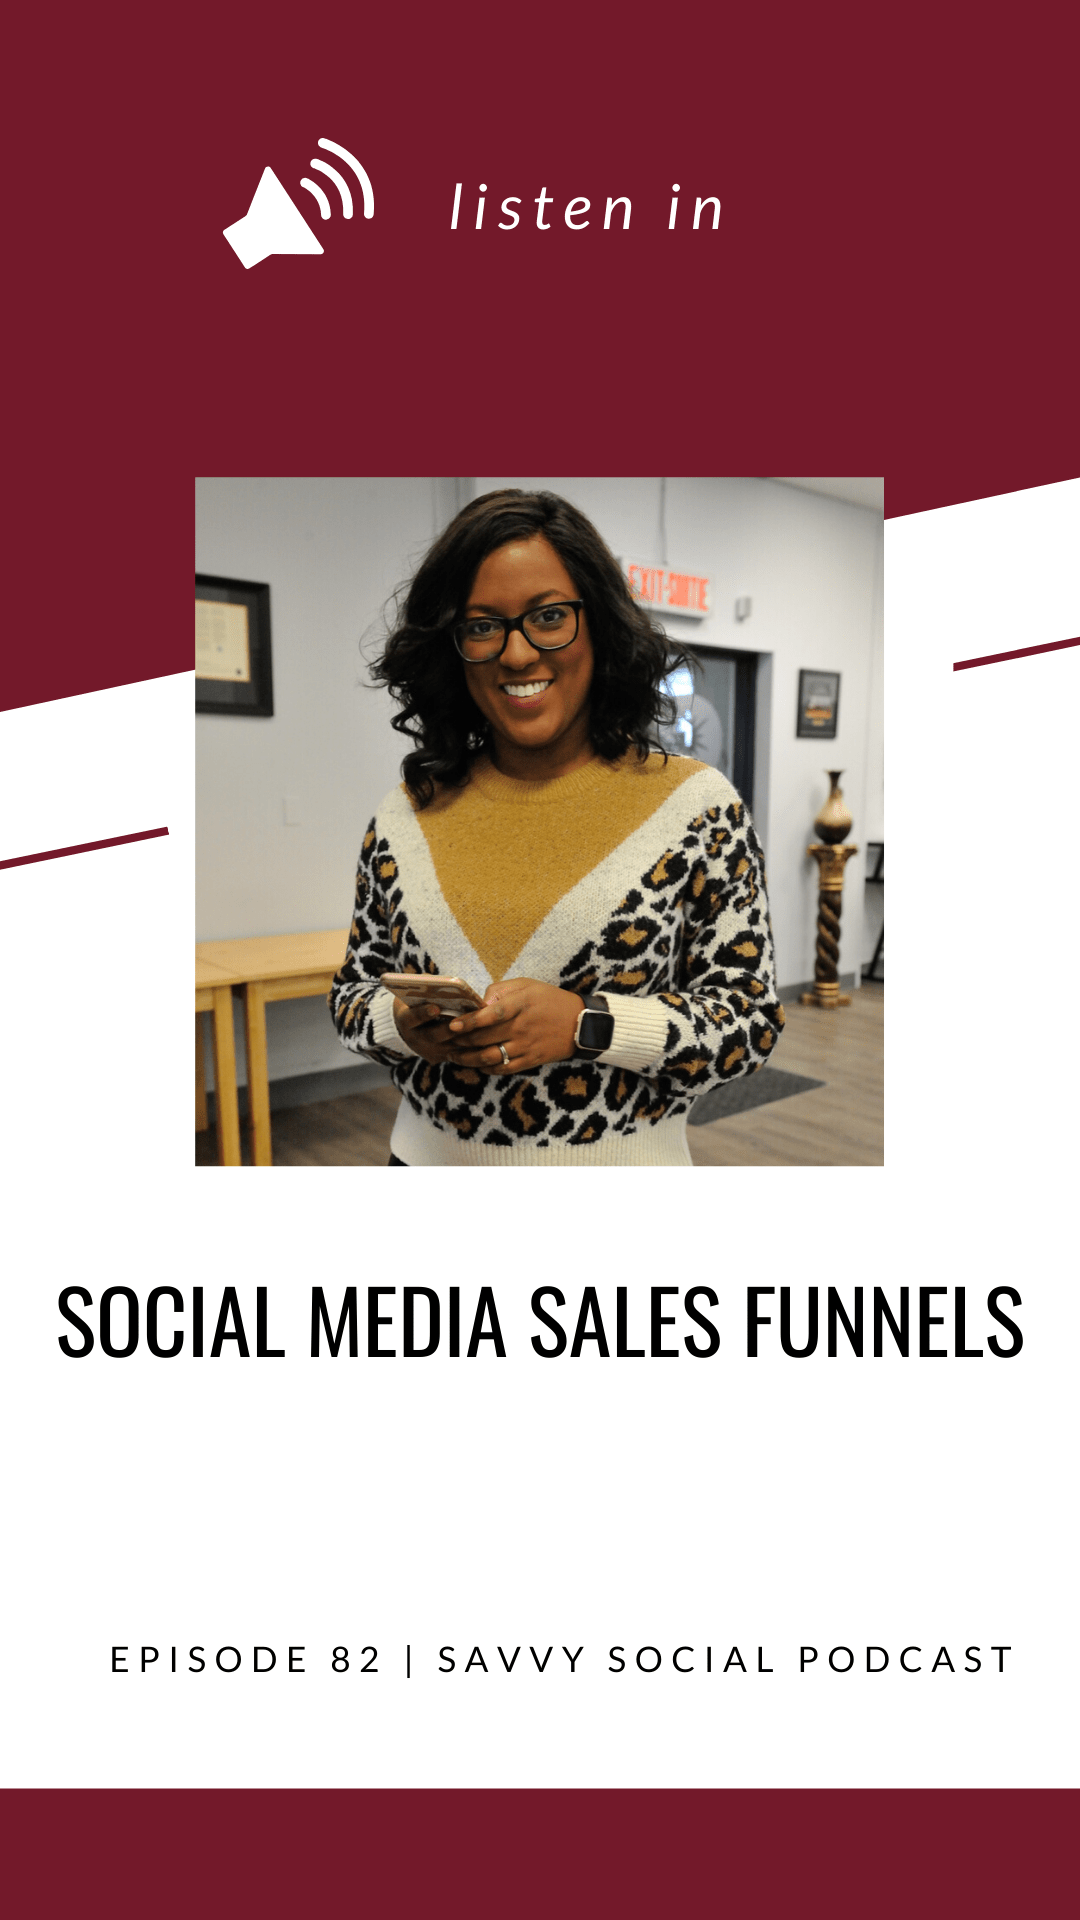 Have you established a sales funnel you can confidently say converts your fans into paying customers? A sales funnel is crucial to your social media strategy if you're ready to increase your reach and your revenue so if you're not sure where to start, this podcast episode is for you! Get tips on what to avoid when creating your sales funnel, how to prepare for a sales funnel & more!